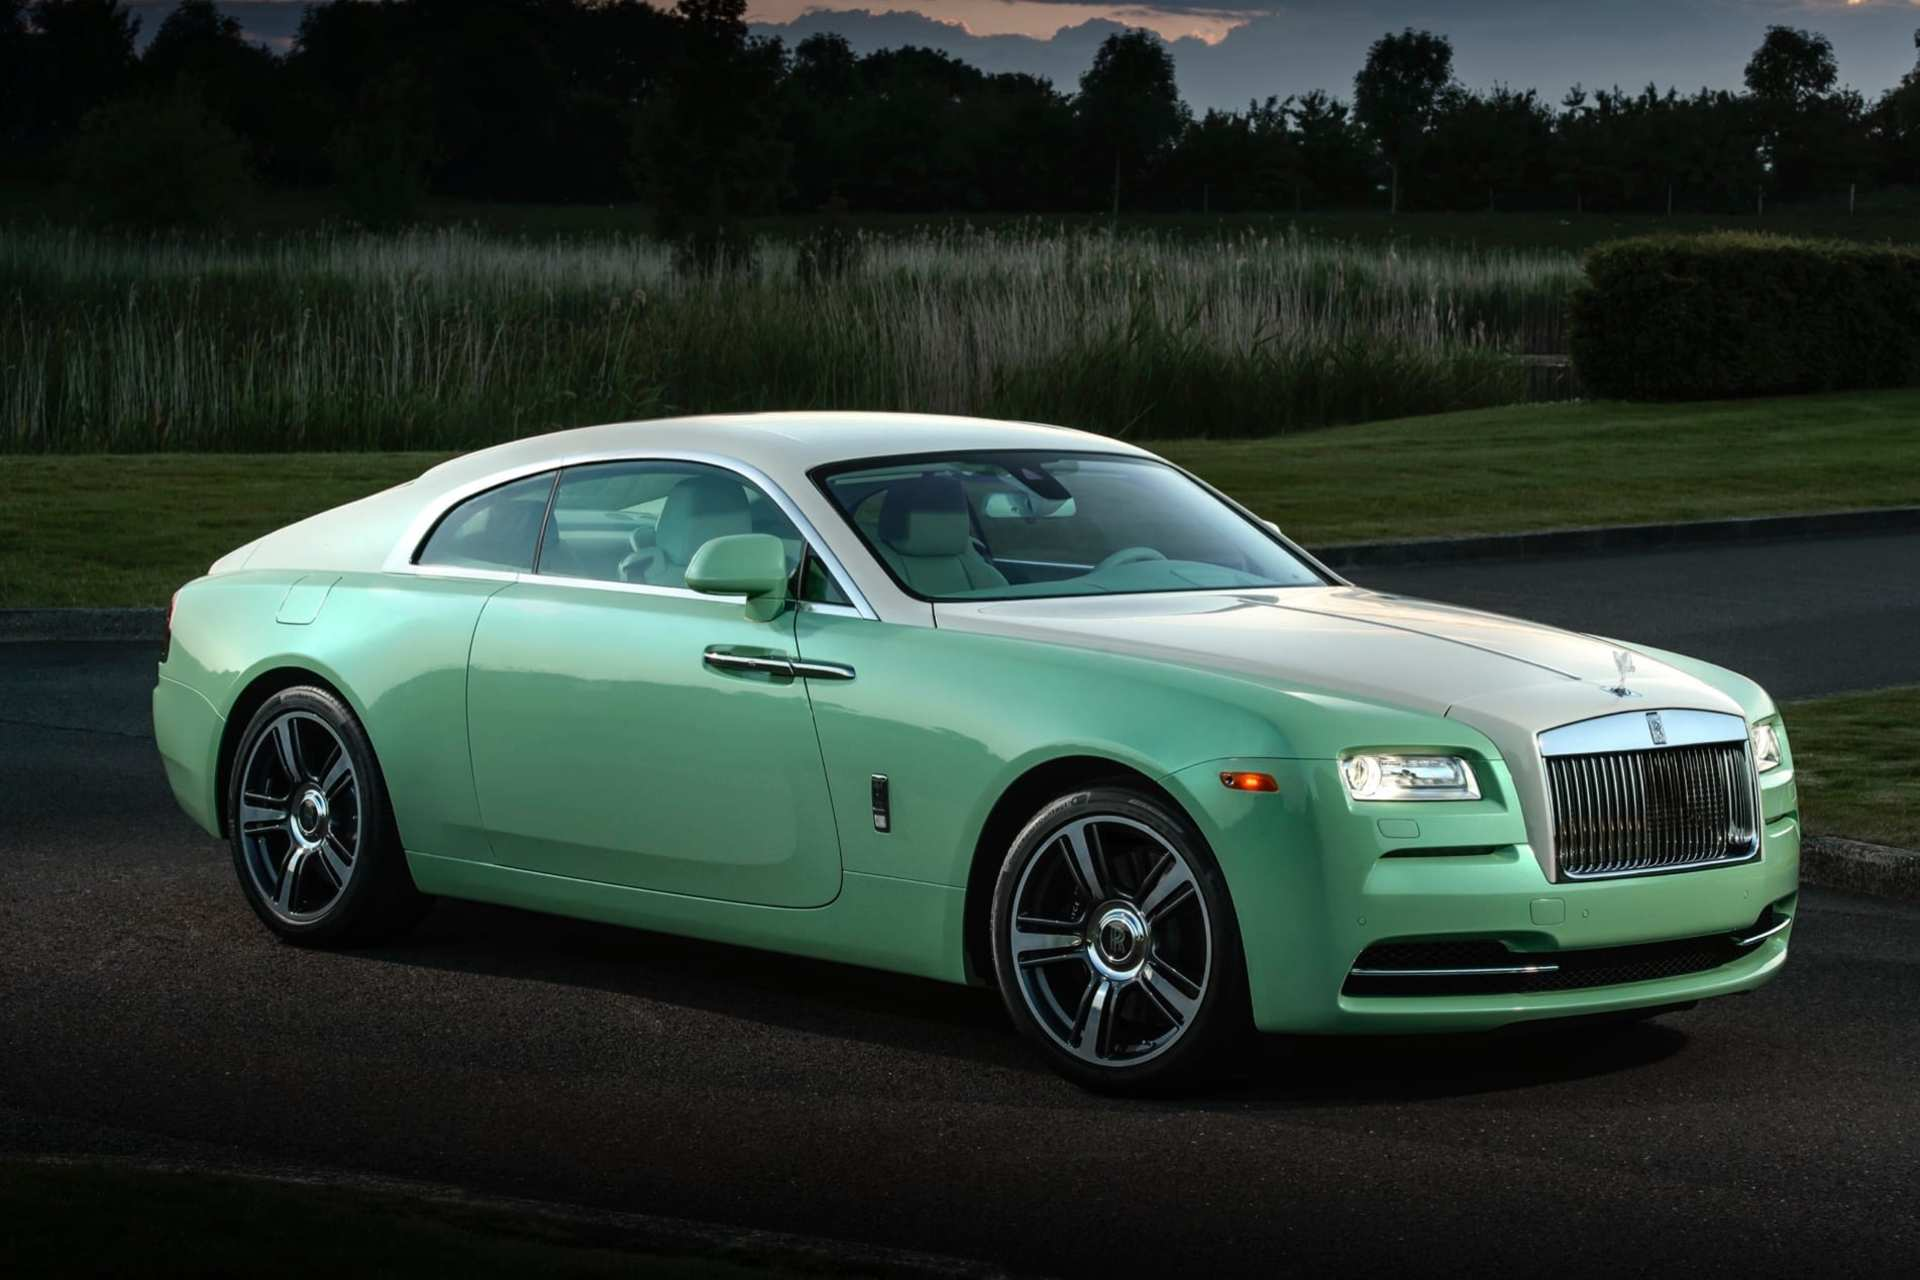 Rolls-Royce Wraith Michael Fux commission, full car profile, wide shot, lime green with grass and dark sky in background